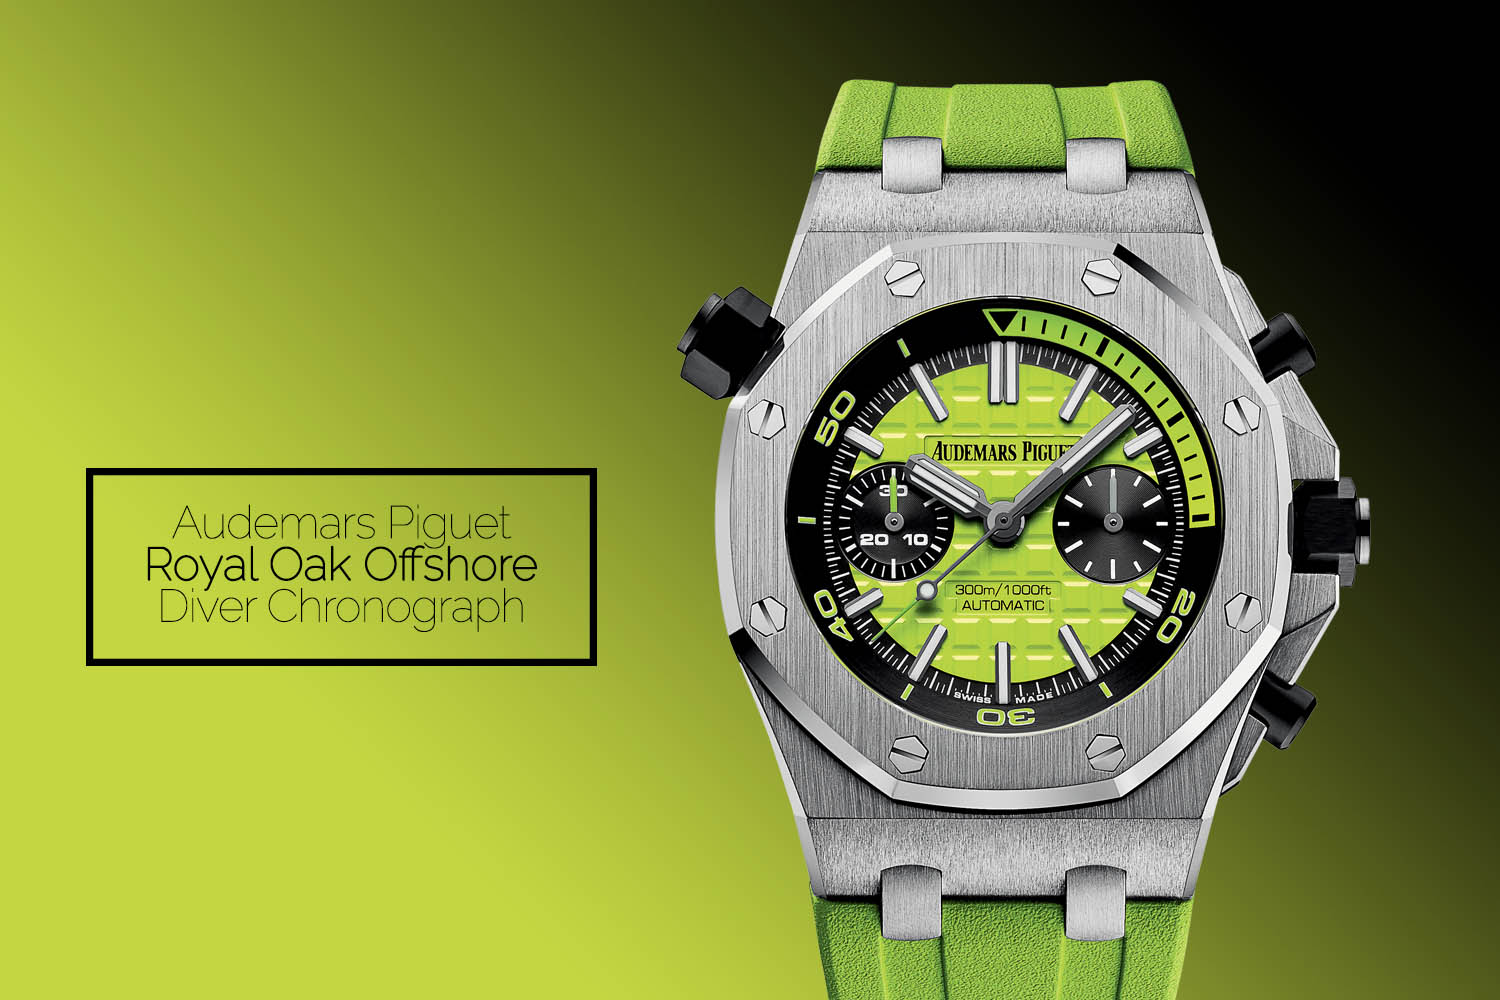 Audemars Piguet Royal Oak Offshore Diver Chronograph Lime Green